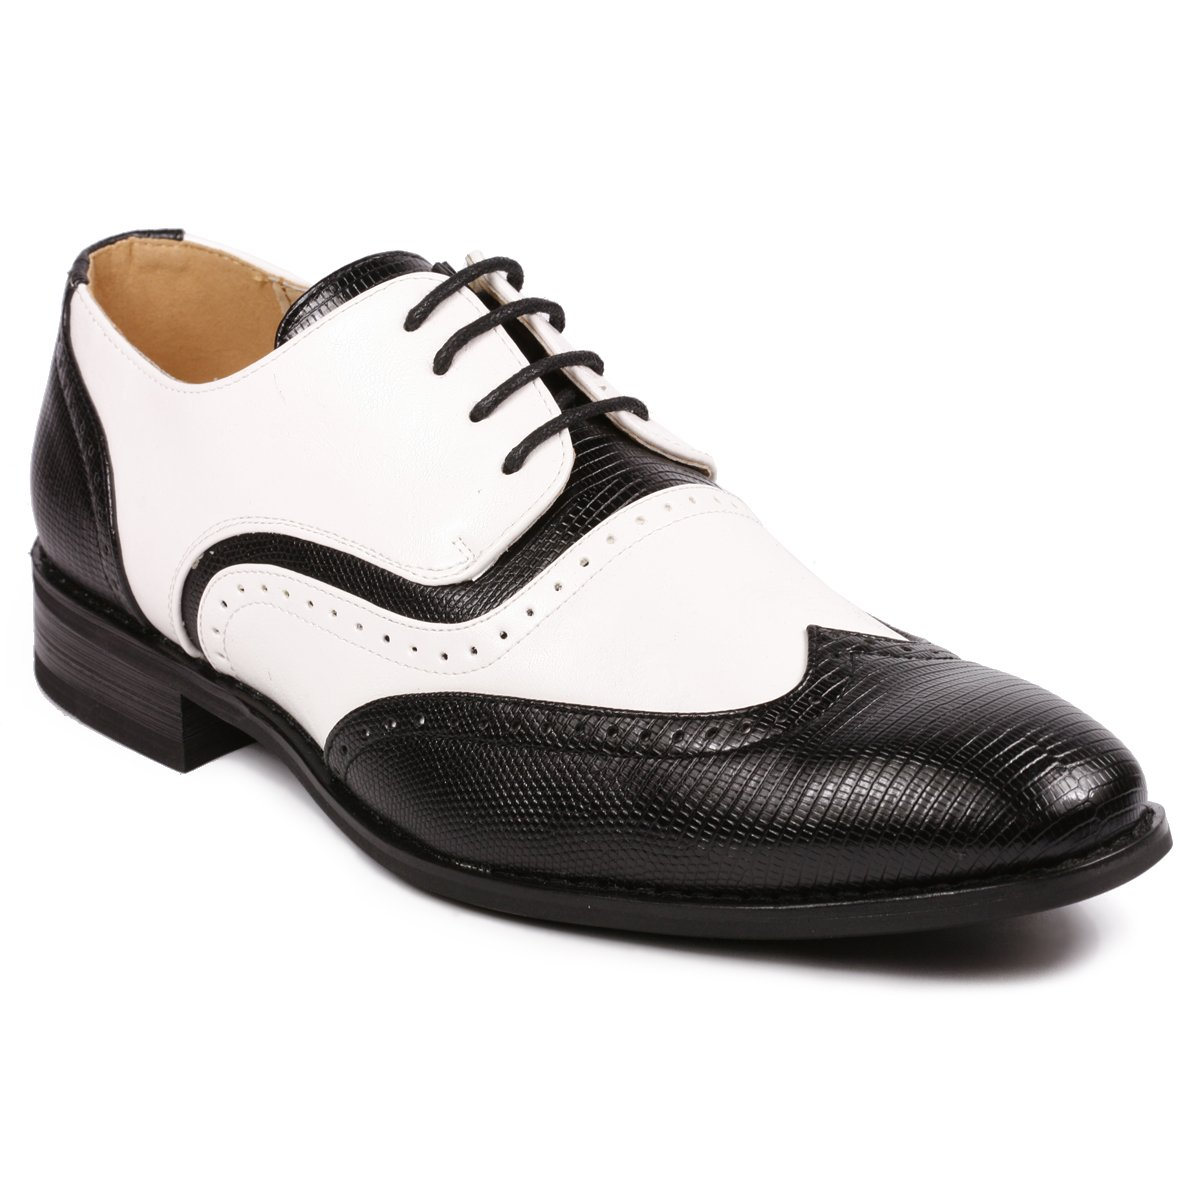 1950s Mens Shoes: Saddle Shoes, Boots, Greaser, Rockabilly Metrocharm MC113 Mens Wing Tip Perforated Lace Up Oxford Dress Shoes $39.99 AT vintagedancer.com